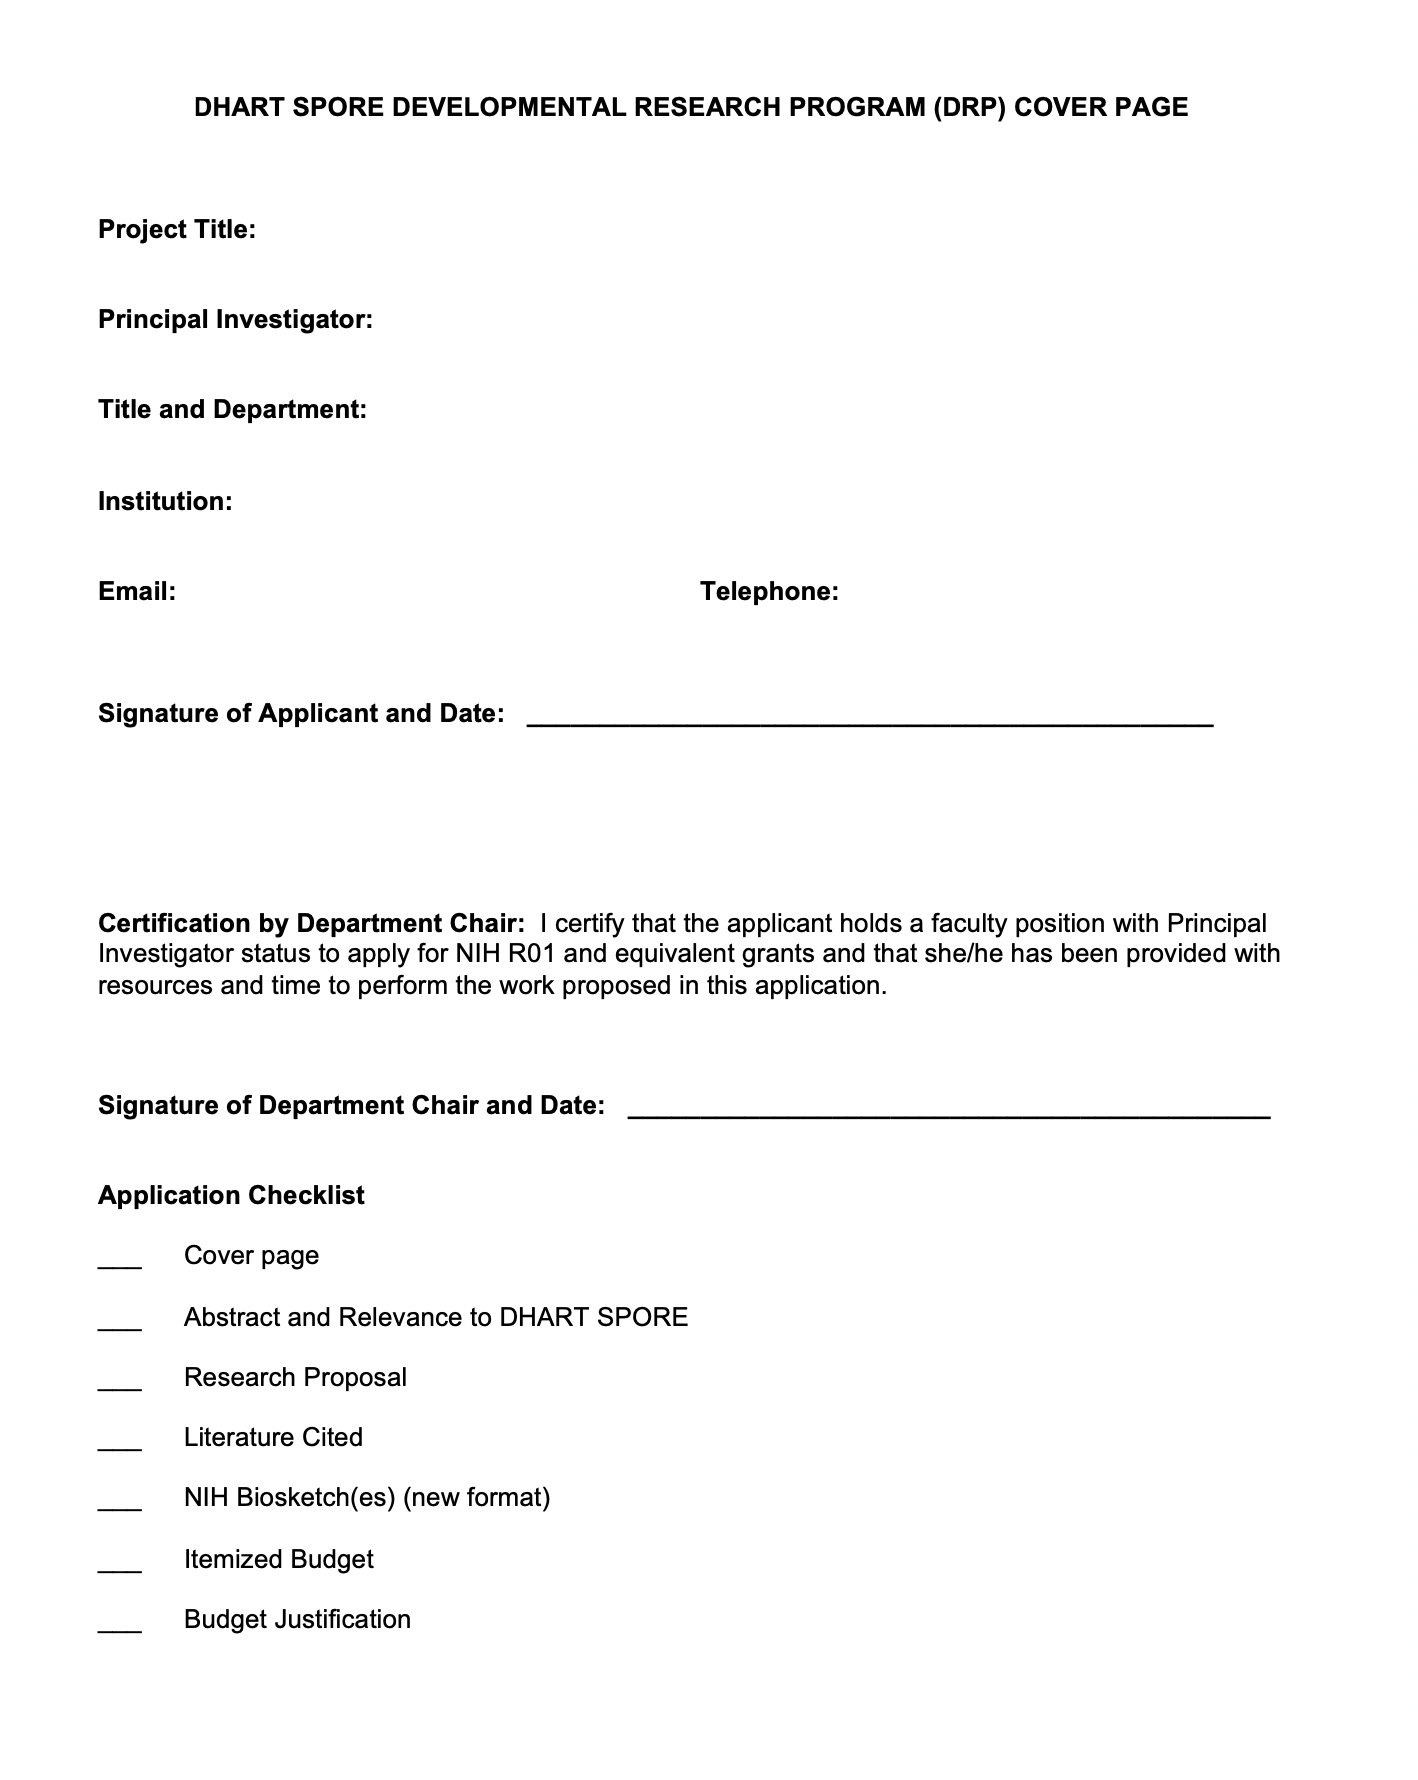 DHART SPORE DRP Proposal Form